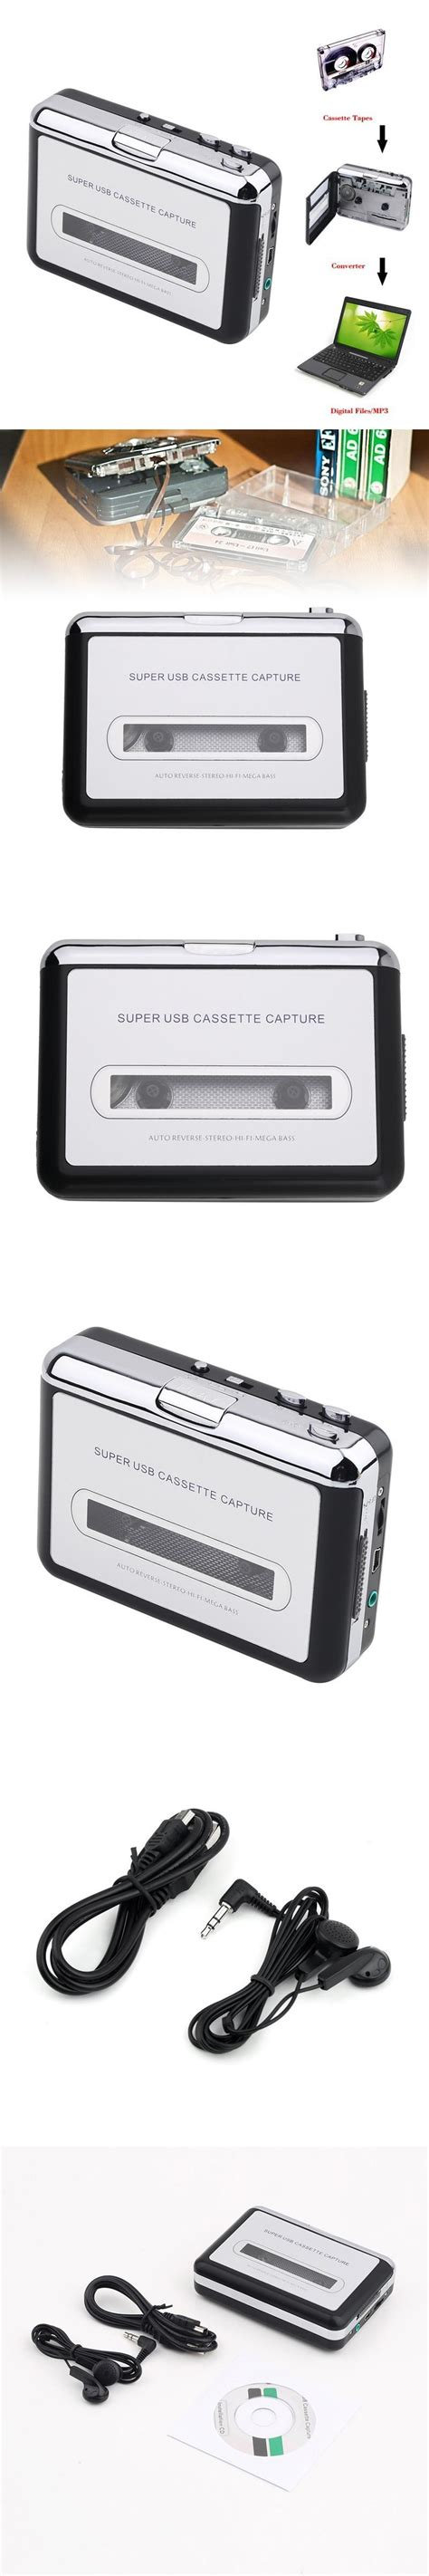 cassette to cd to pc usb cassette mp3 cd converter capture for